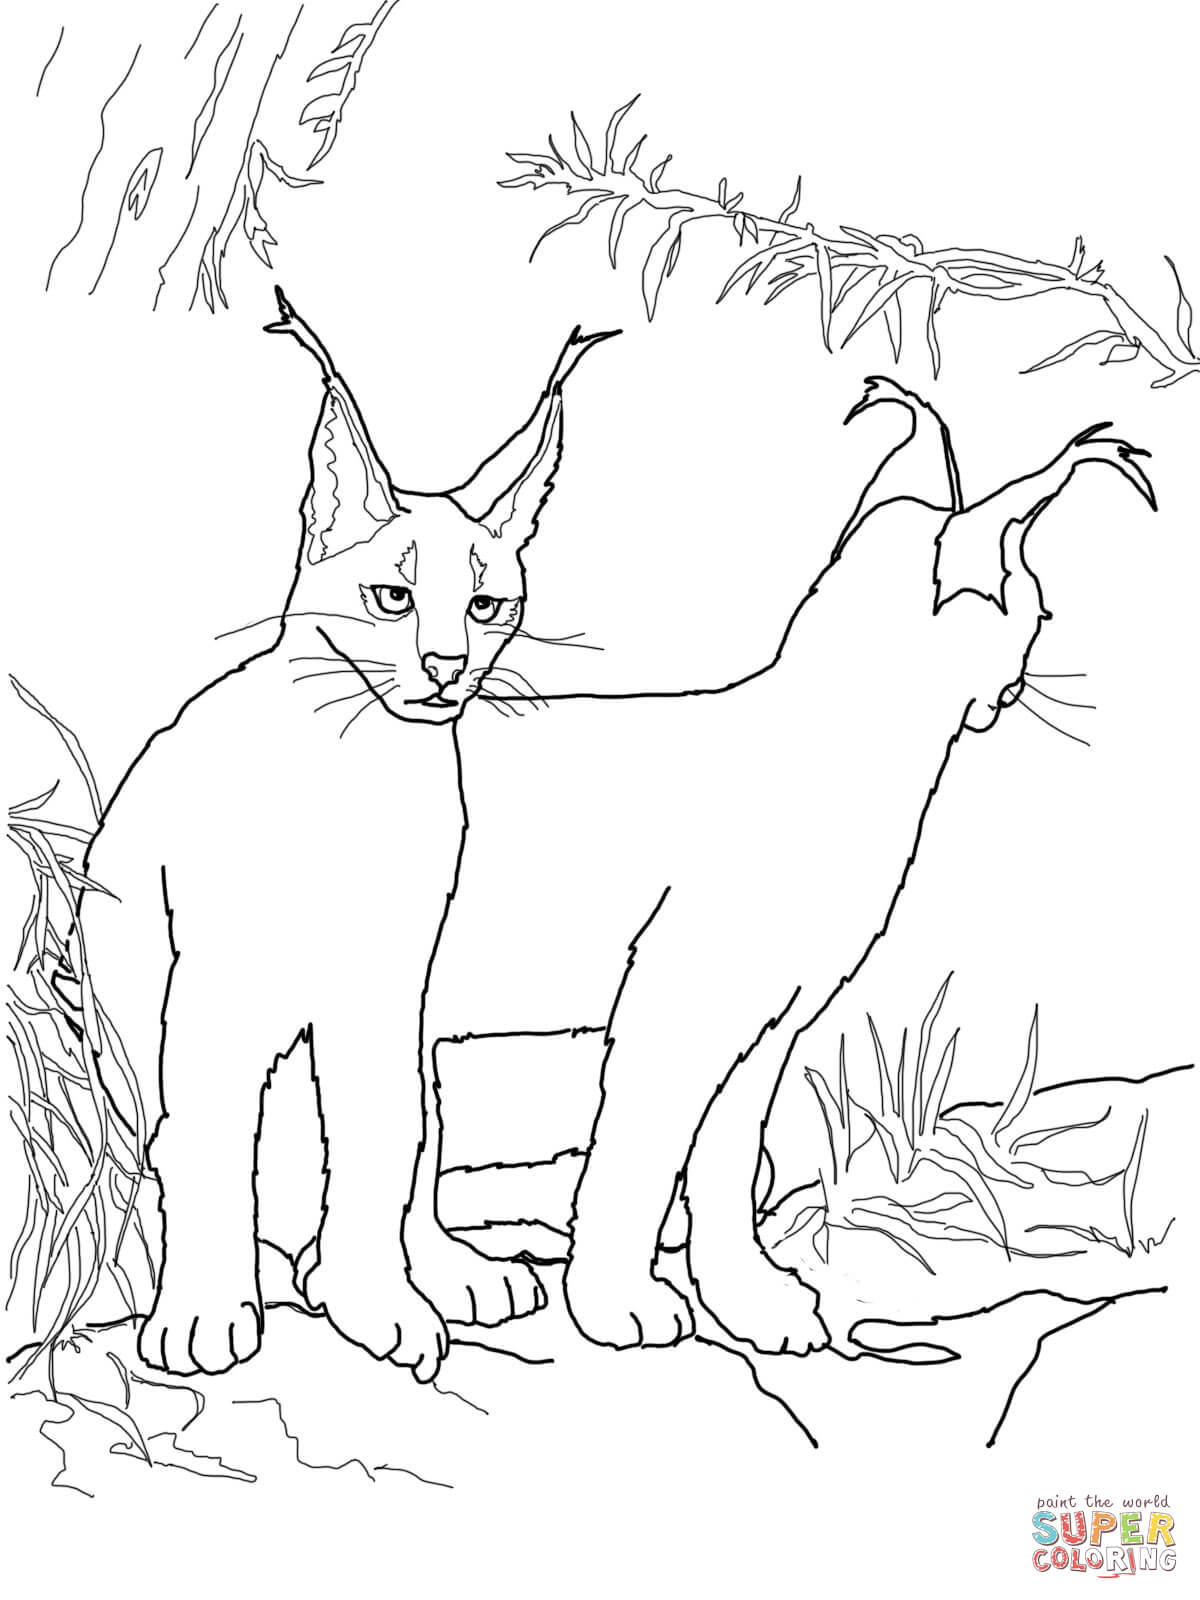 Caracal Kittens coloring page | Free Printable Coloring Pages